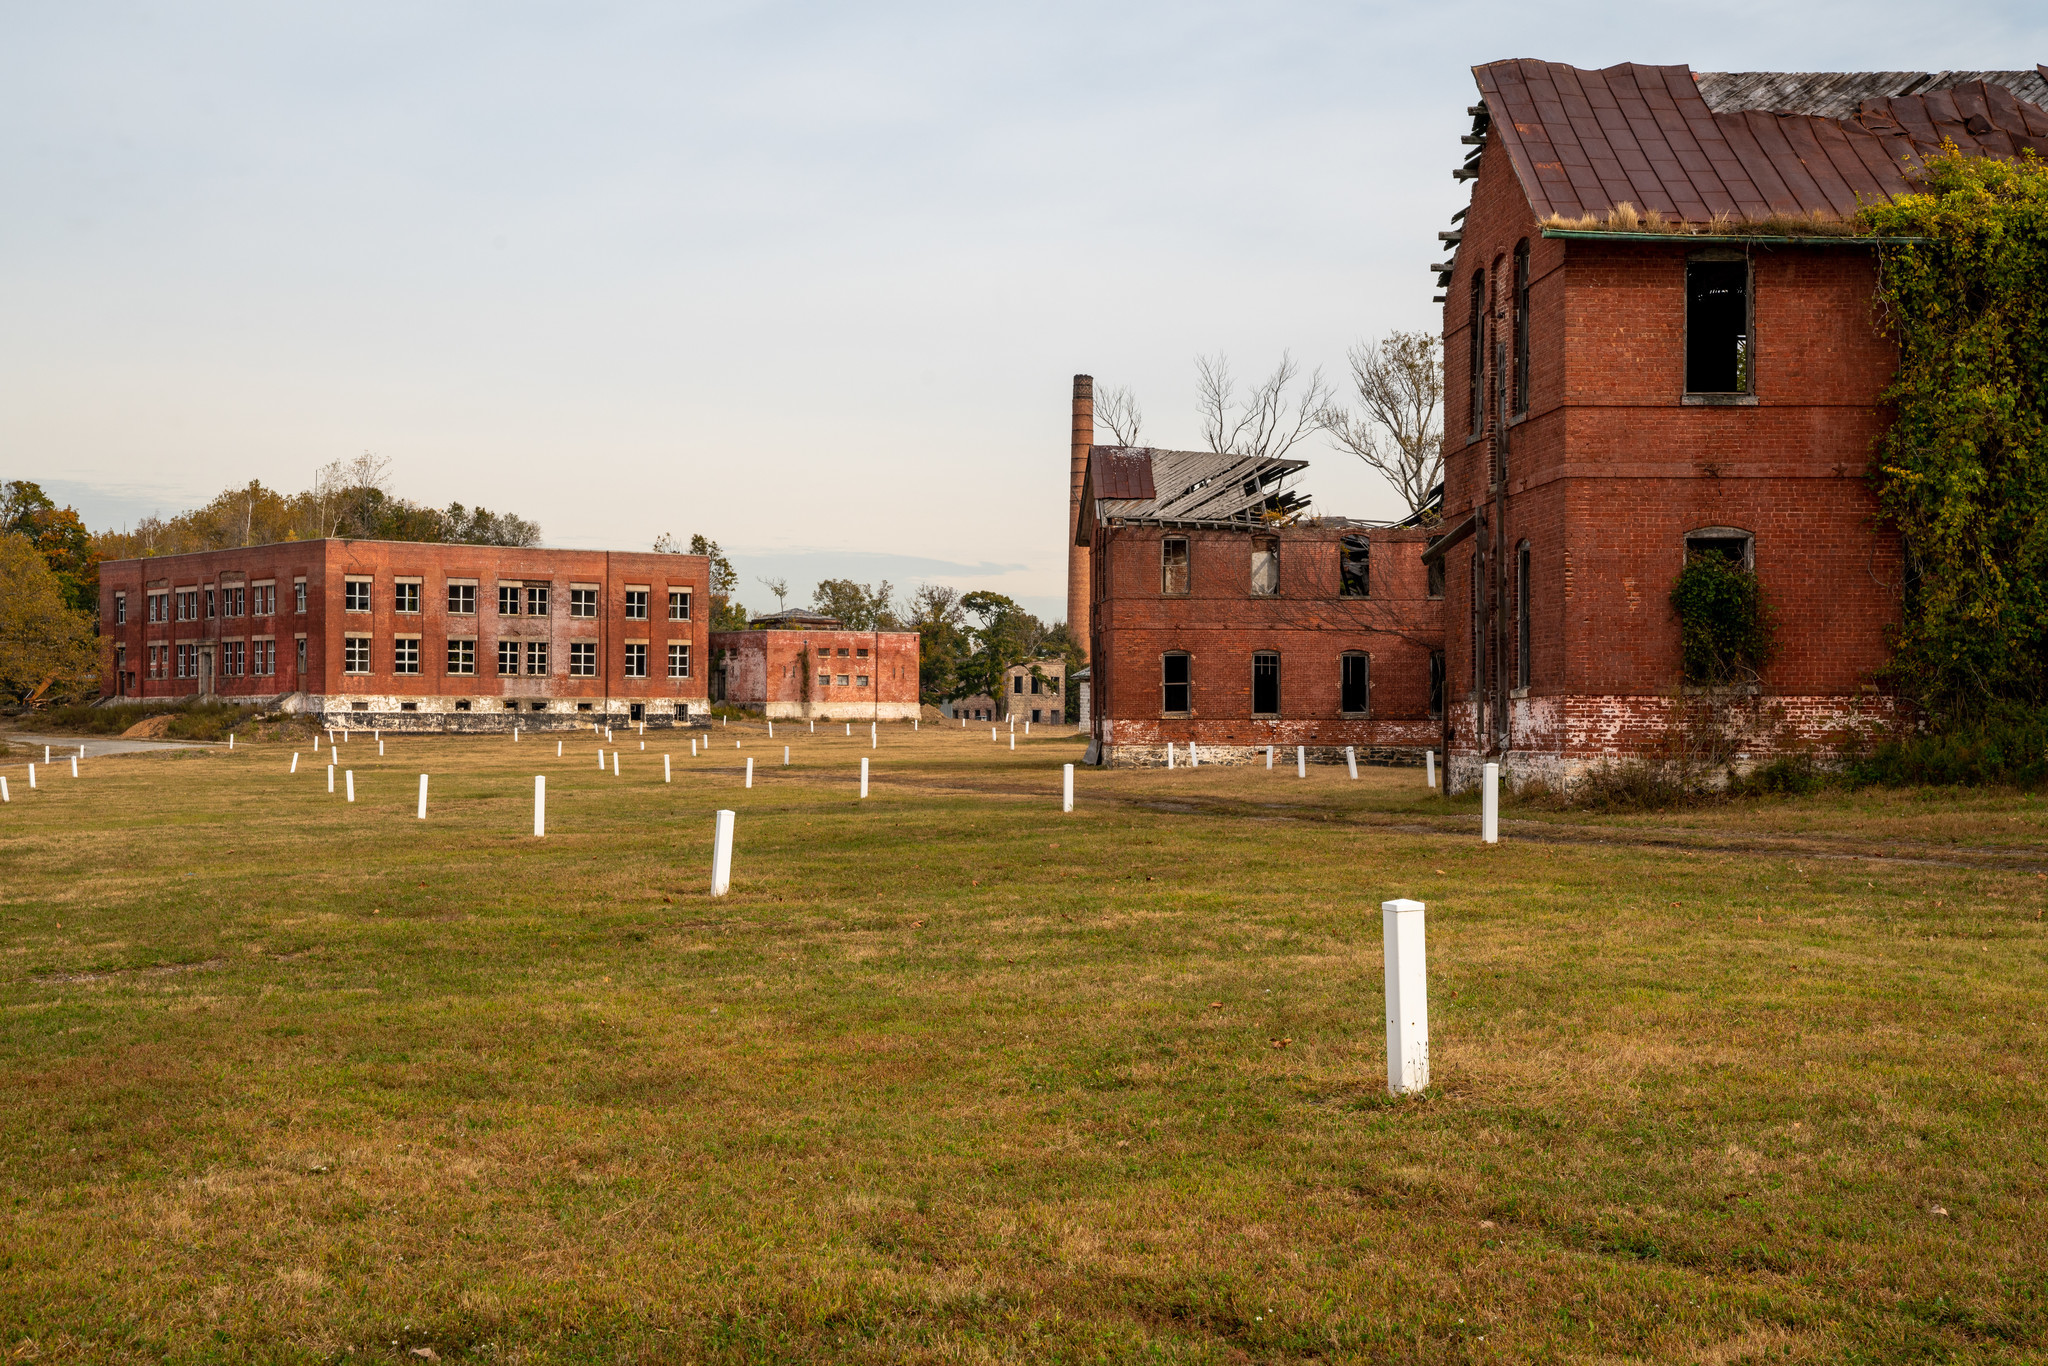 Access to Hart Island burial ground expanded under law signed by de Blasio